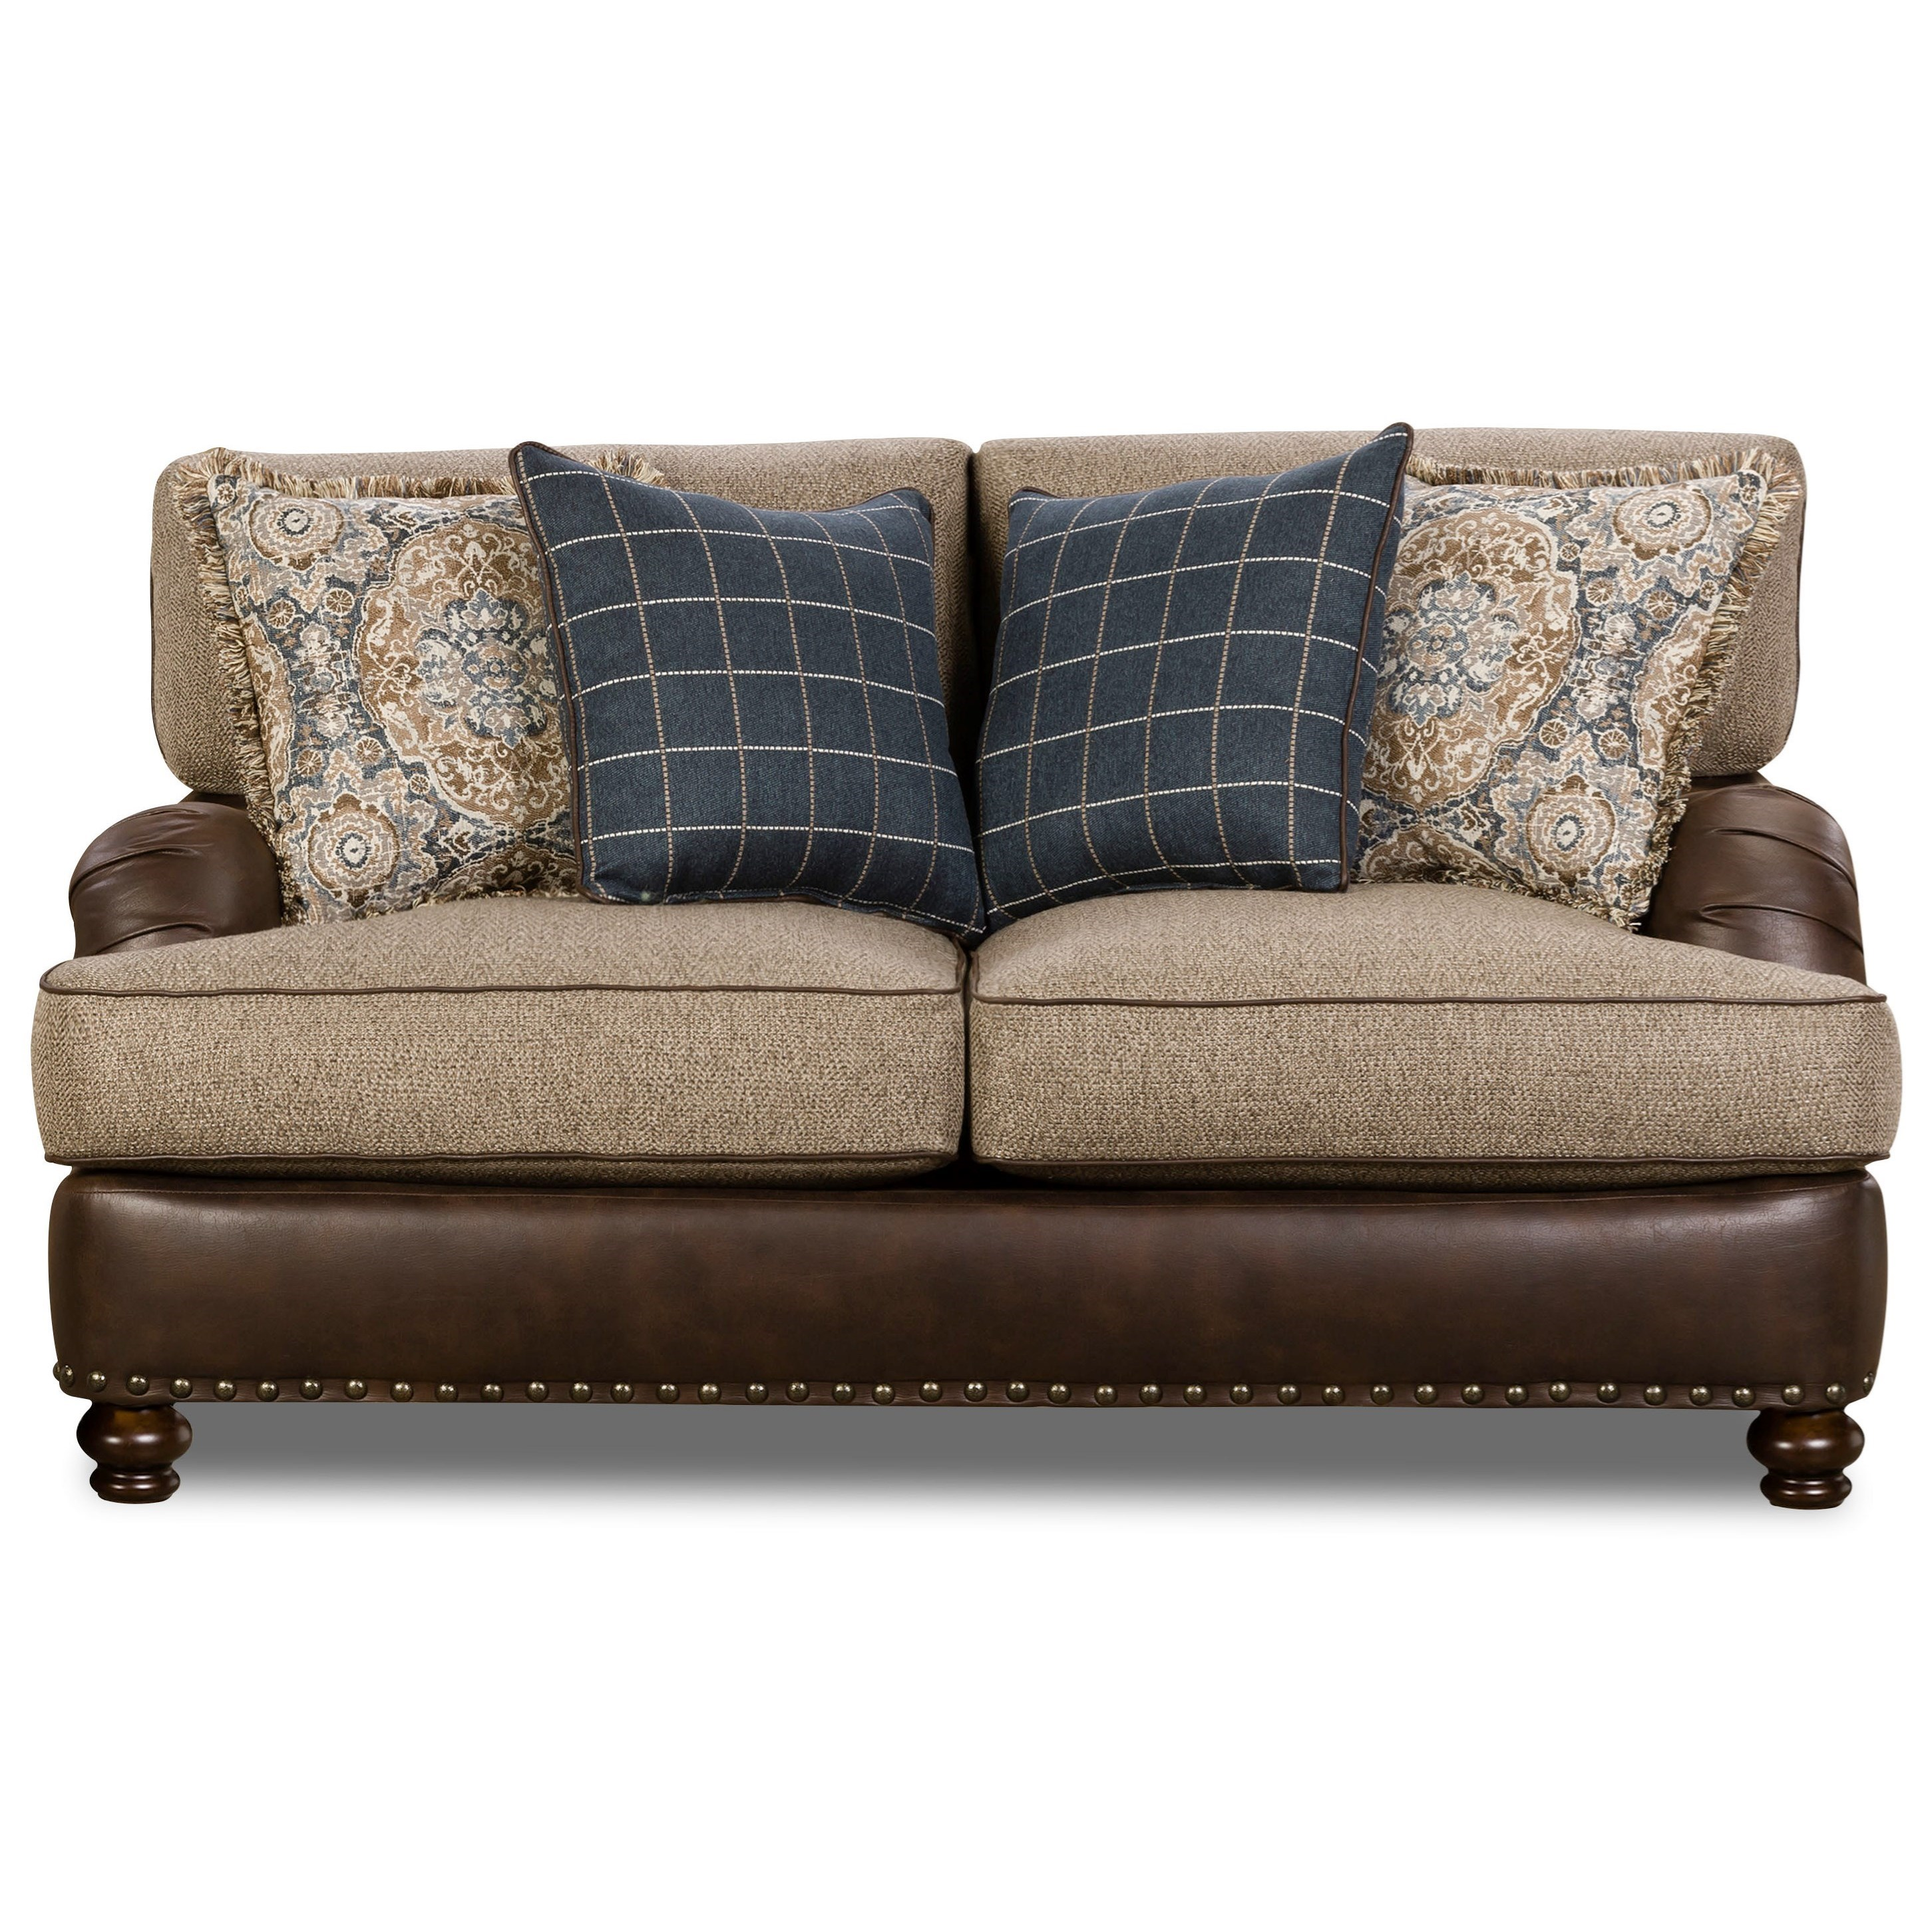 Corinthian 5300 Traditional Styled Sectional Sofa With: Corinthian 2000 Traditional Loveseat